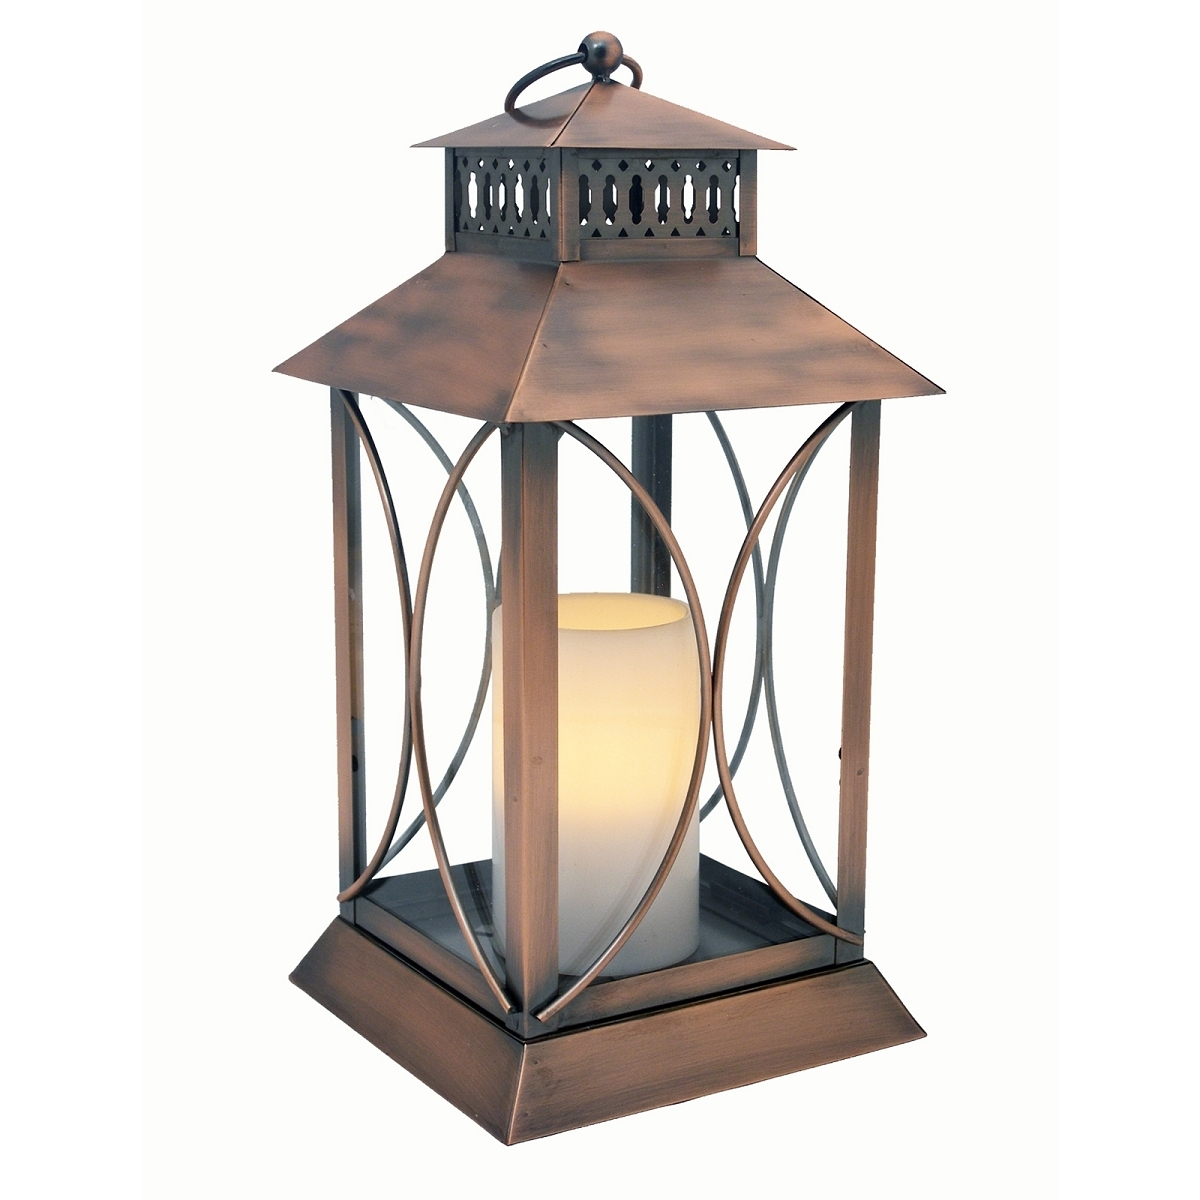 Neuporte Flameless Candle Lantern With Timer Indoor Outdoor Inside Trendy Outdoor Lanterns With Flameless Candles (View 8 of 20)